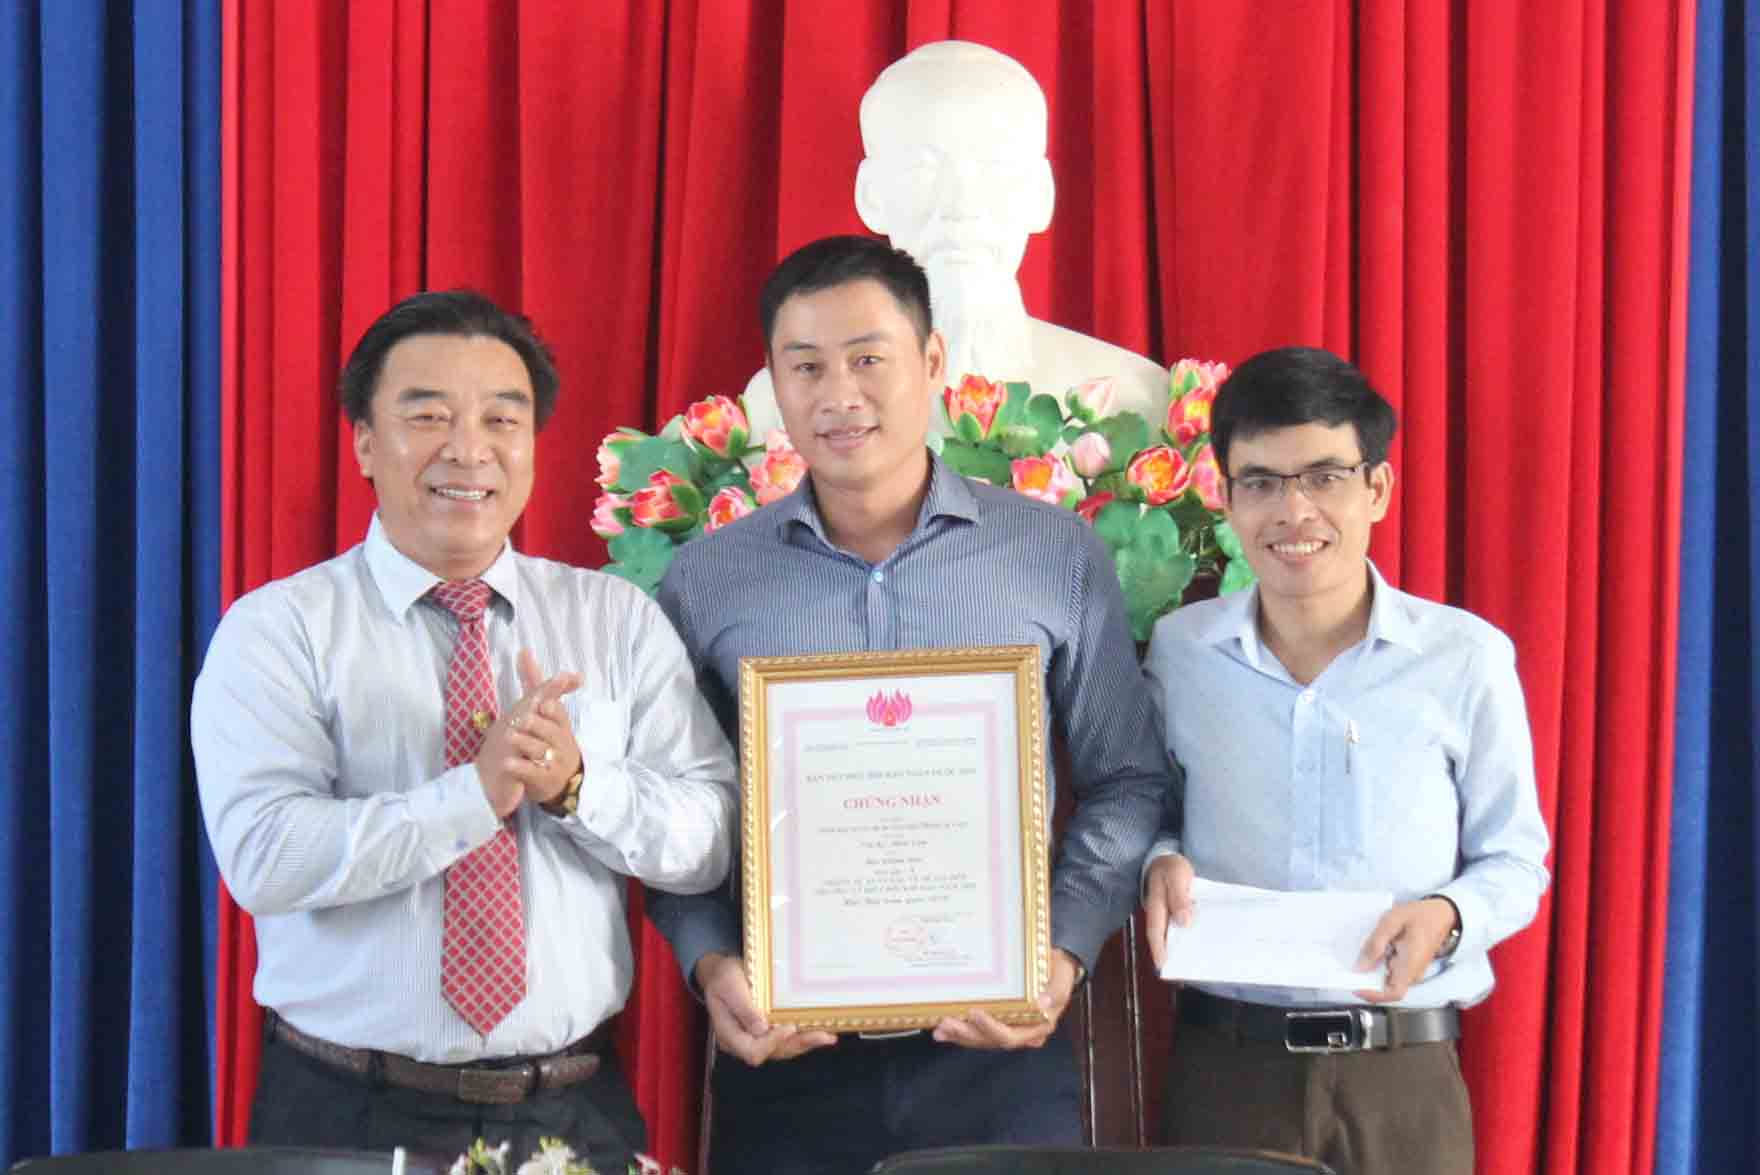 Khanh Hoa Newspaper awarded Prize A at National Press Festival 2019